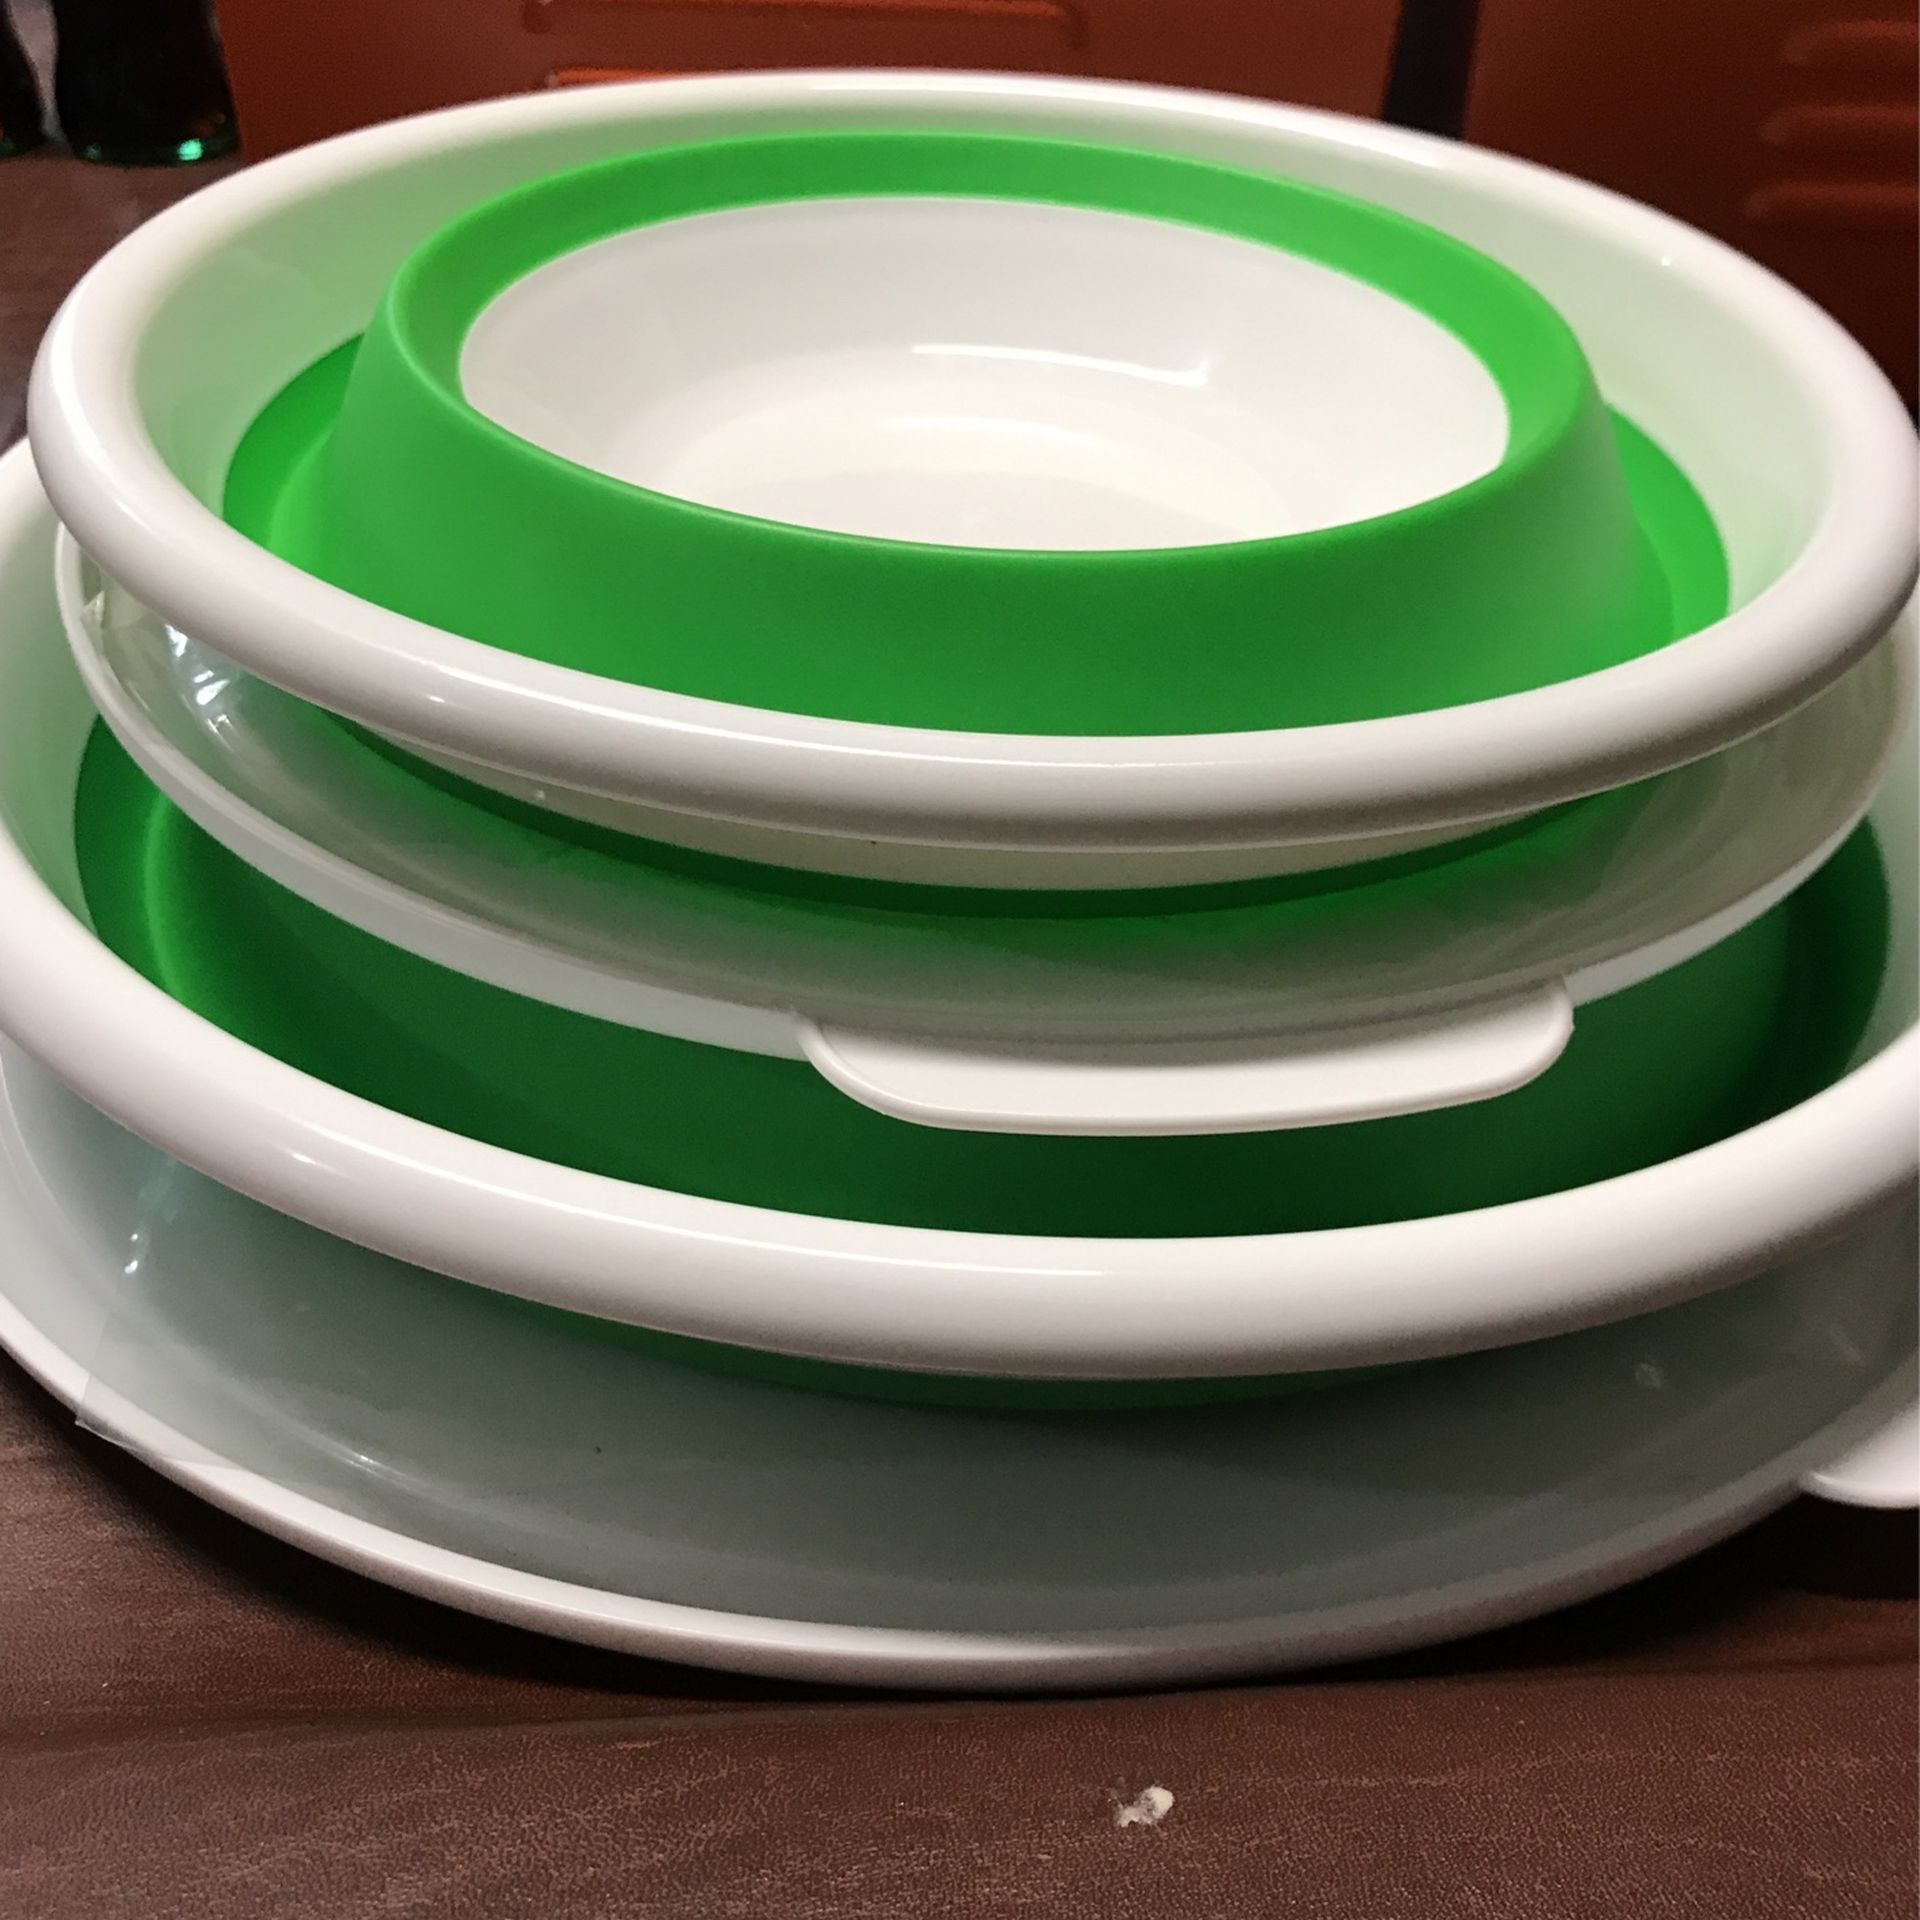 Pampered Chef Collapsible Bowls